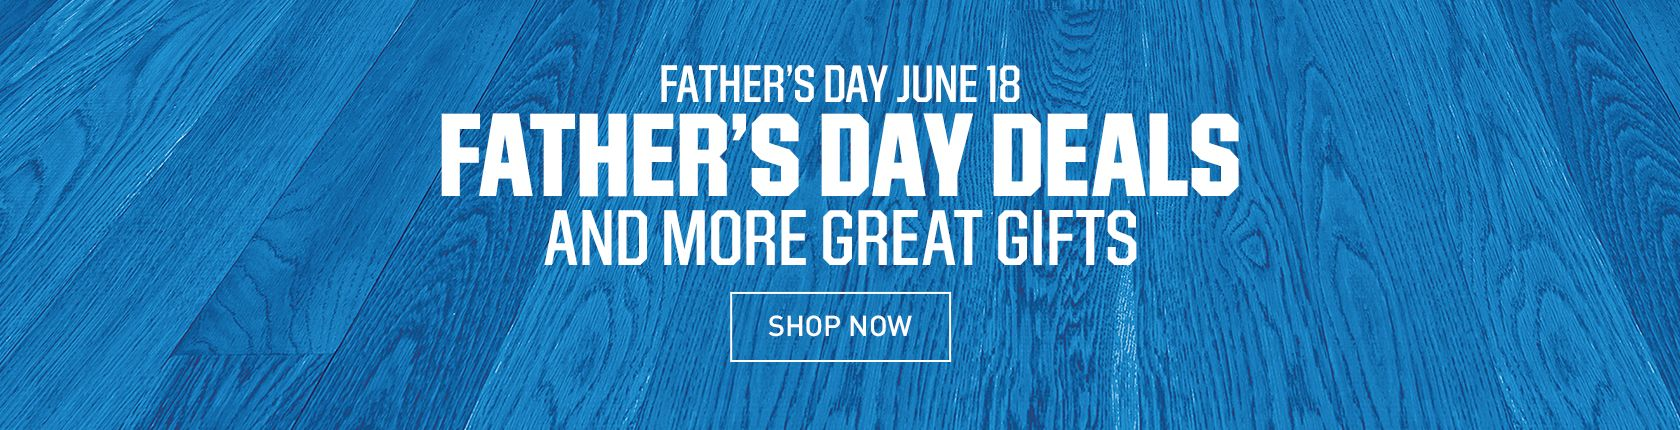 Fathers Day Deals and More Great Gifts - June 18th